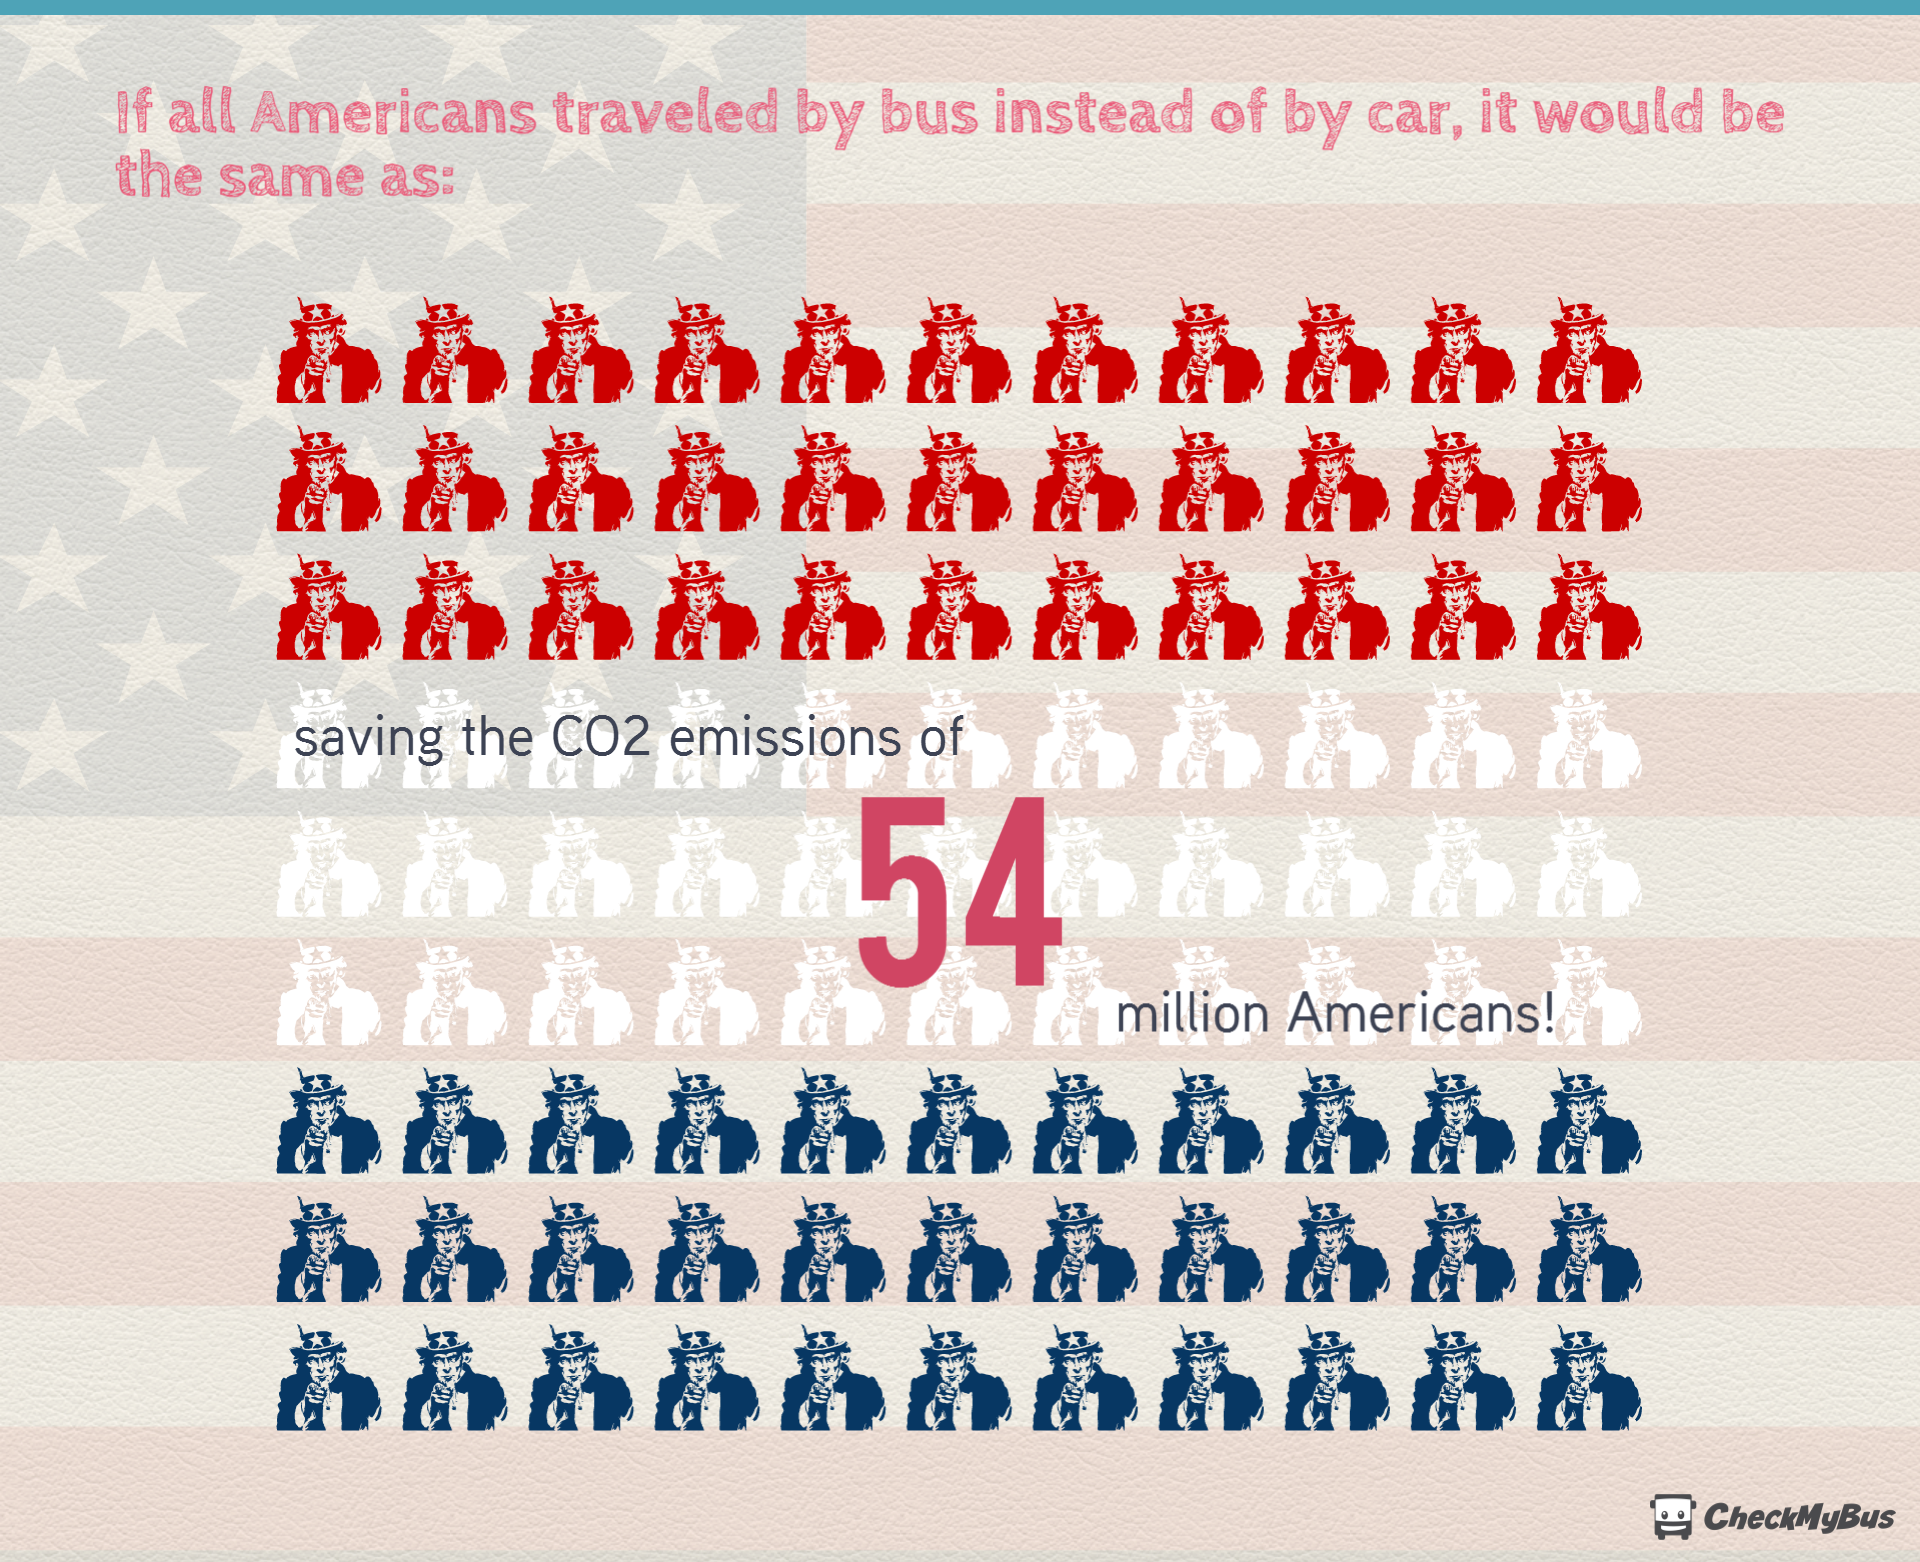 If all Americans traveled by bus instead of by car - CO2 of 54 million Americans